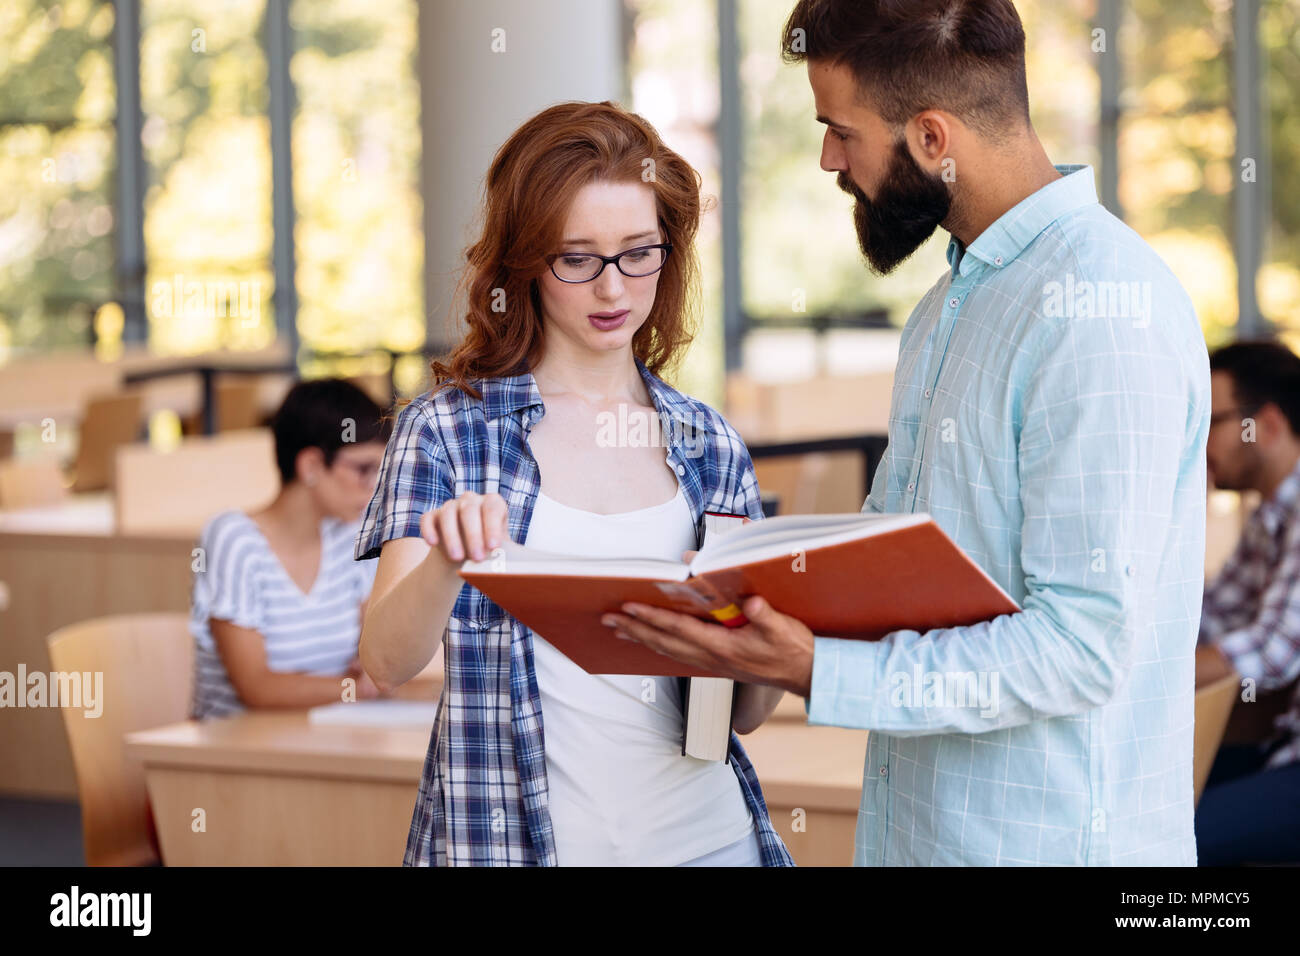 Young woman and man studying for an exam. - Stock Image